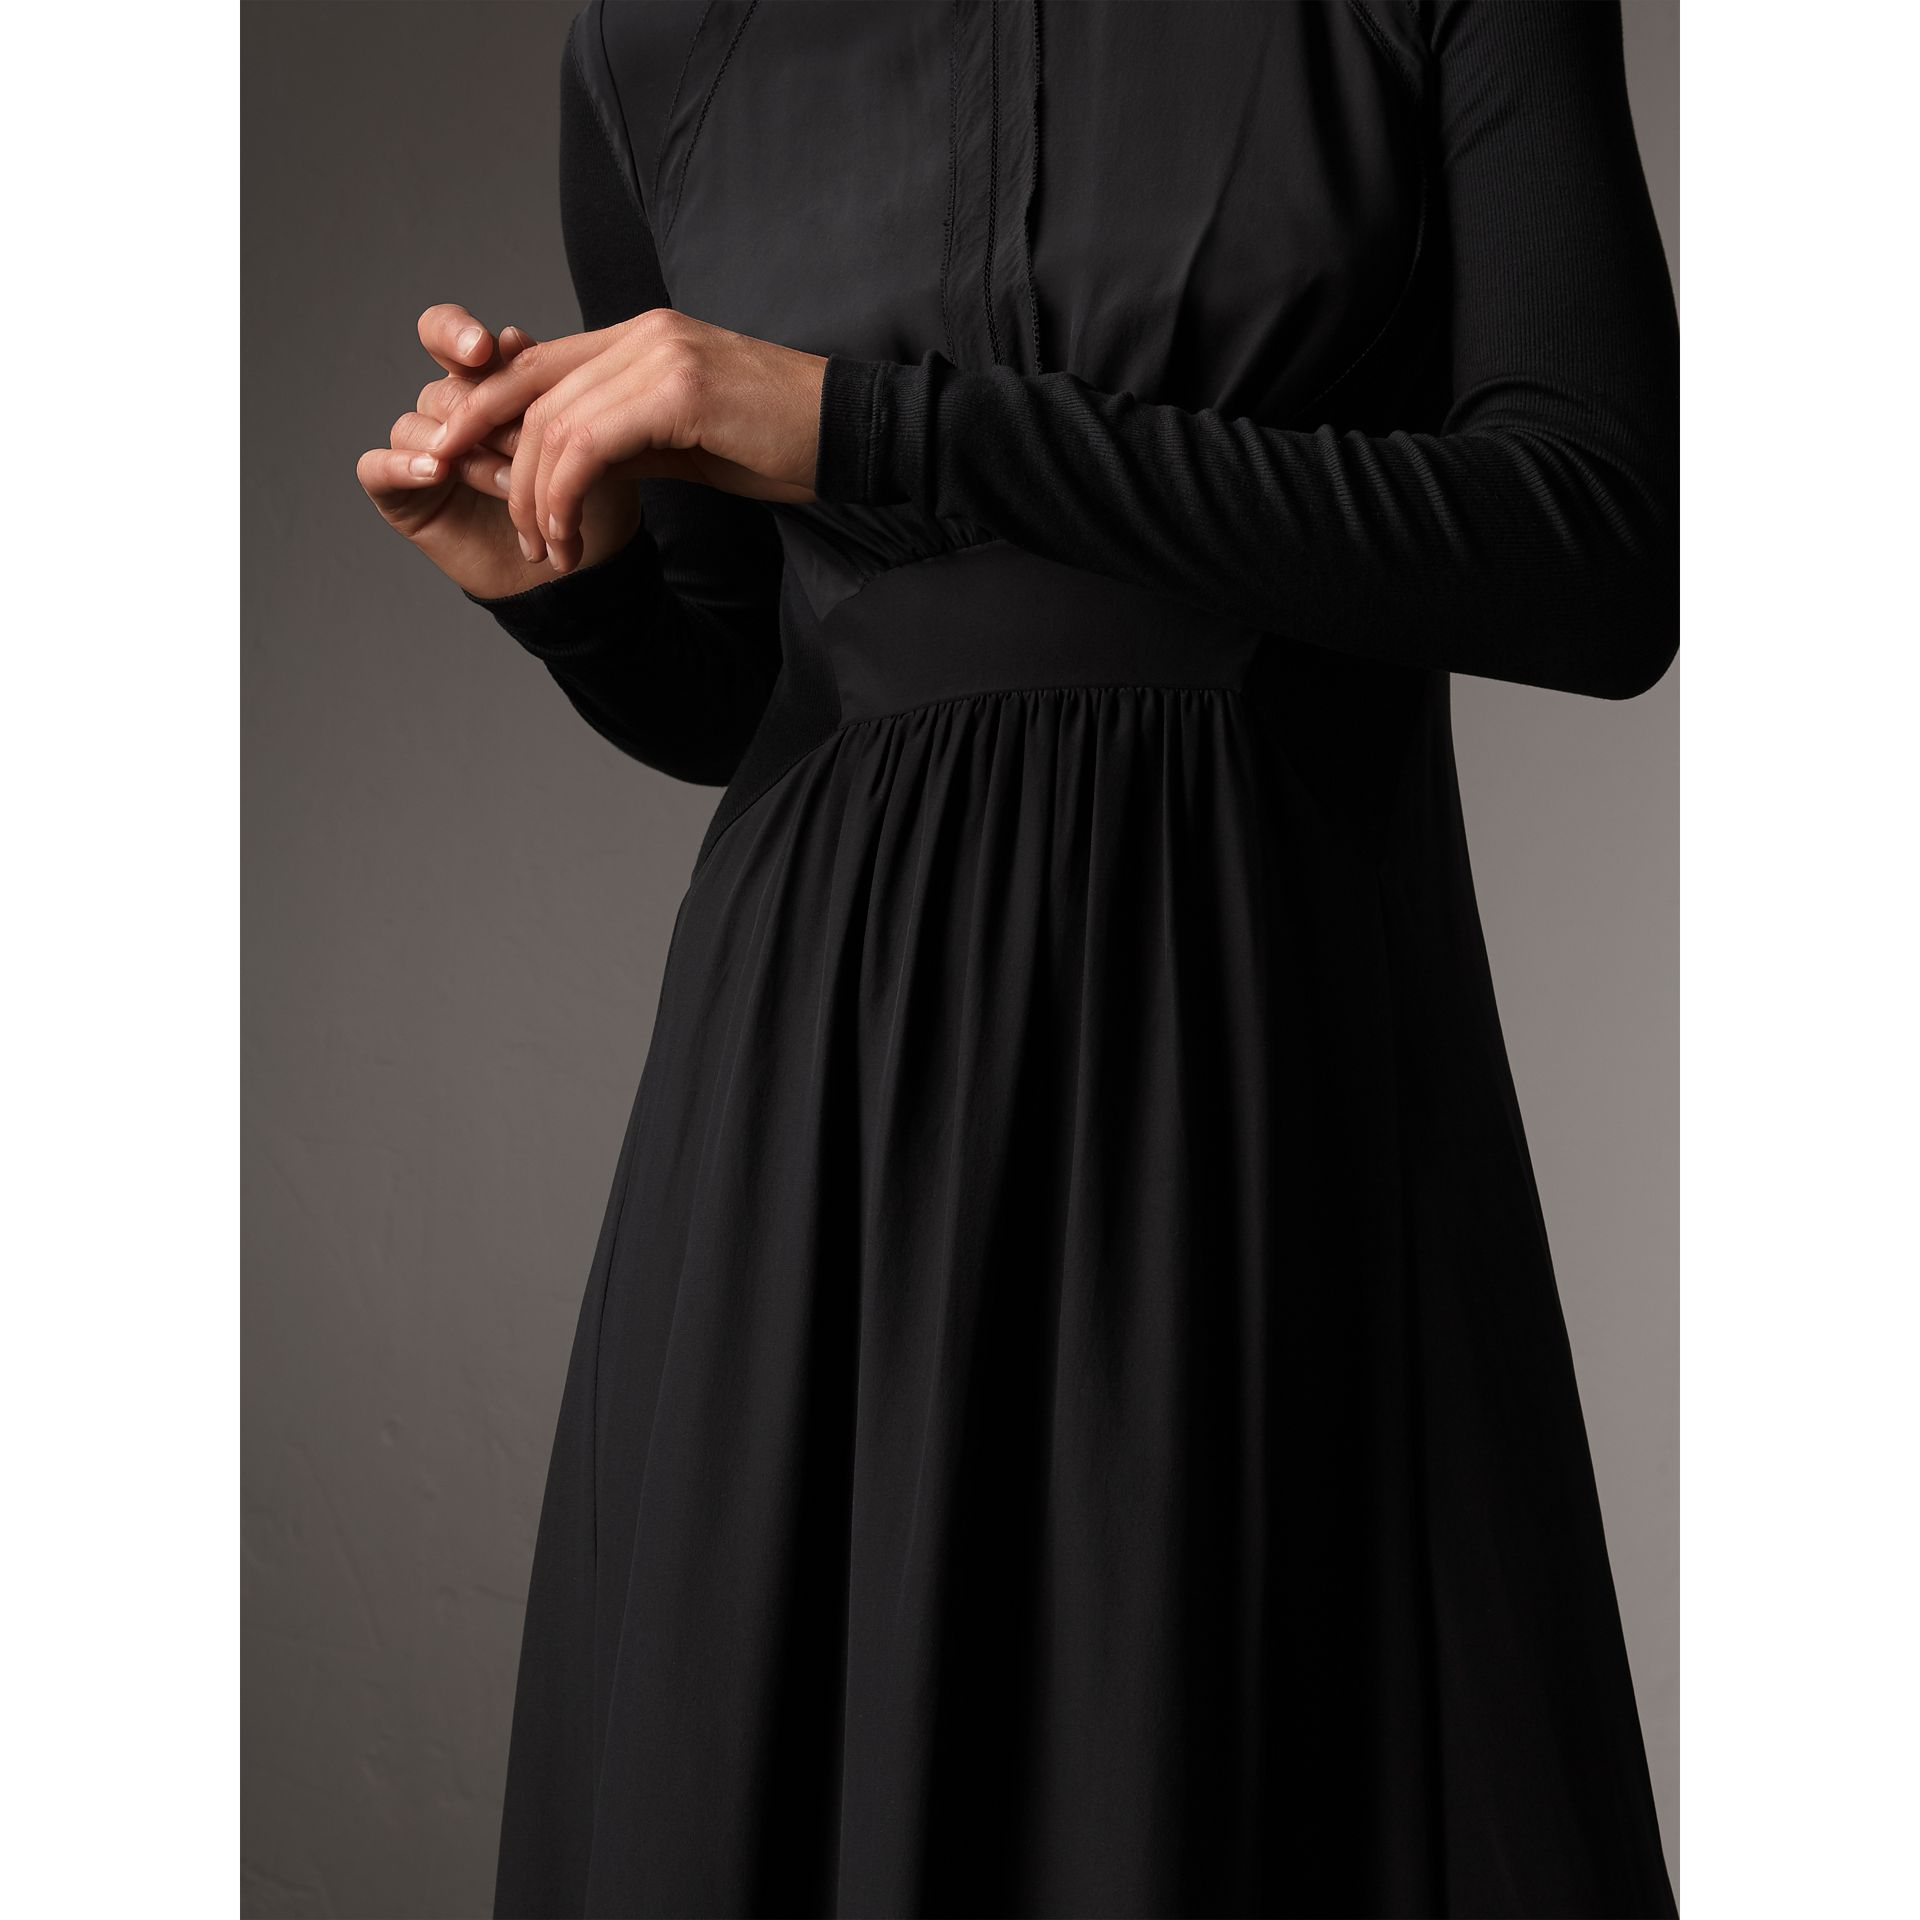 Silk Floor-length Gathered Dress in Black - Women | Burberry Australia - gallery image 2